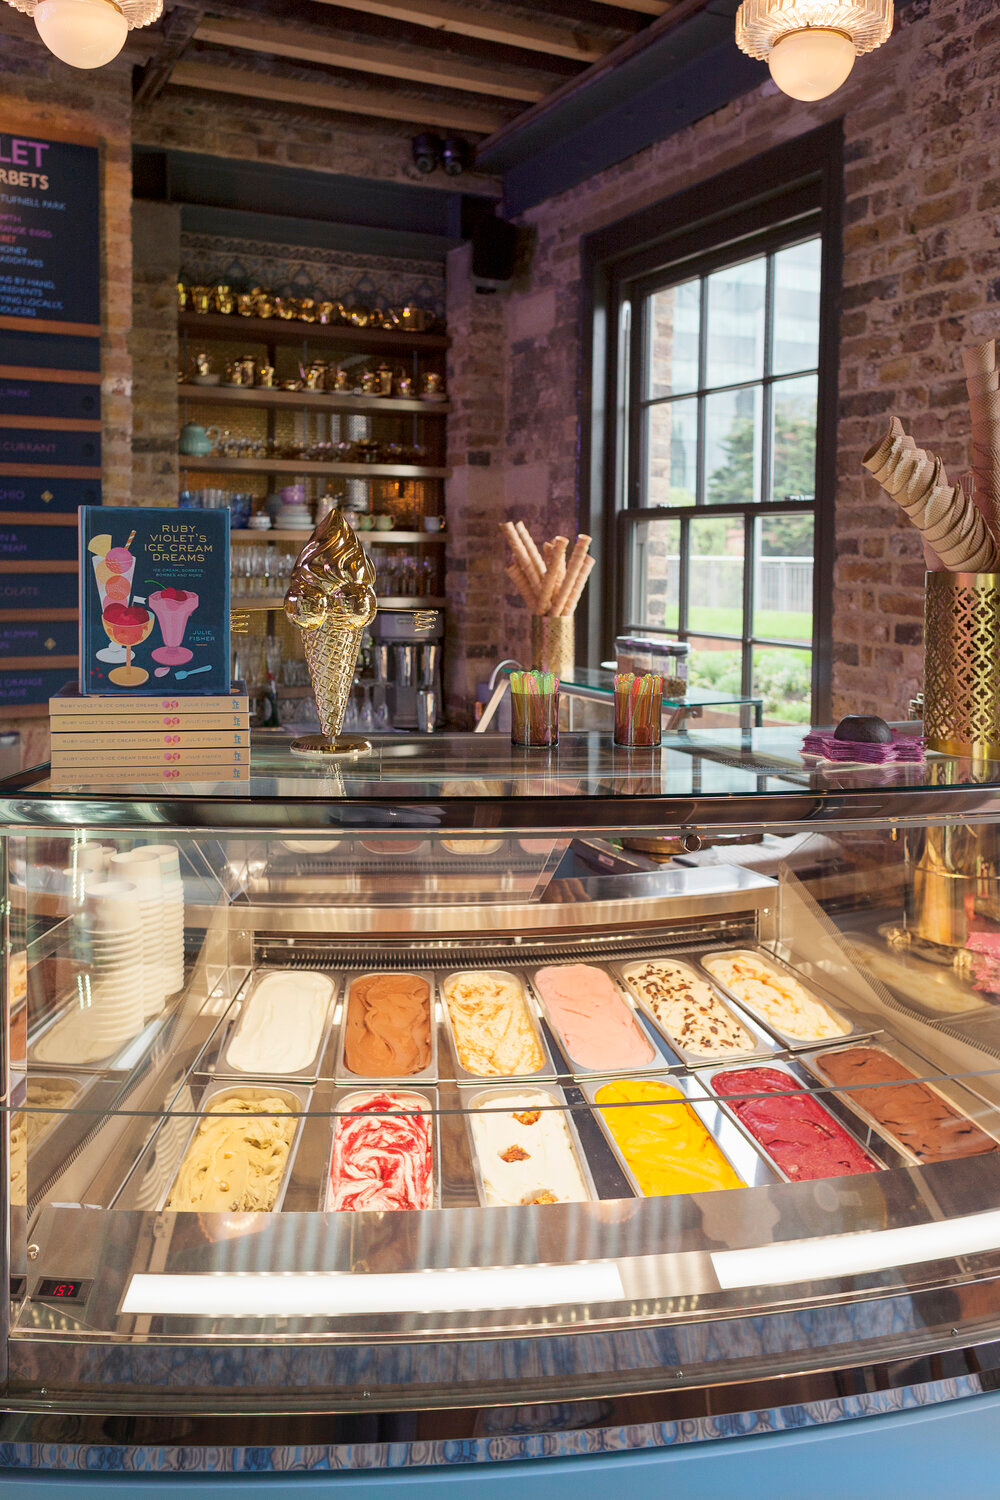 A view of the server with colourful ice creams in the King's Cross parlour